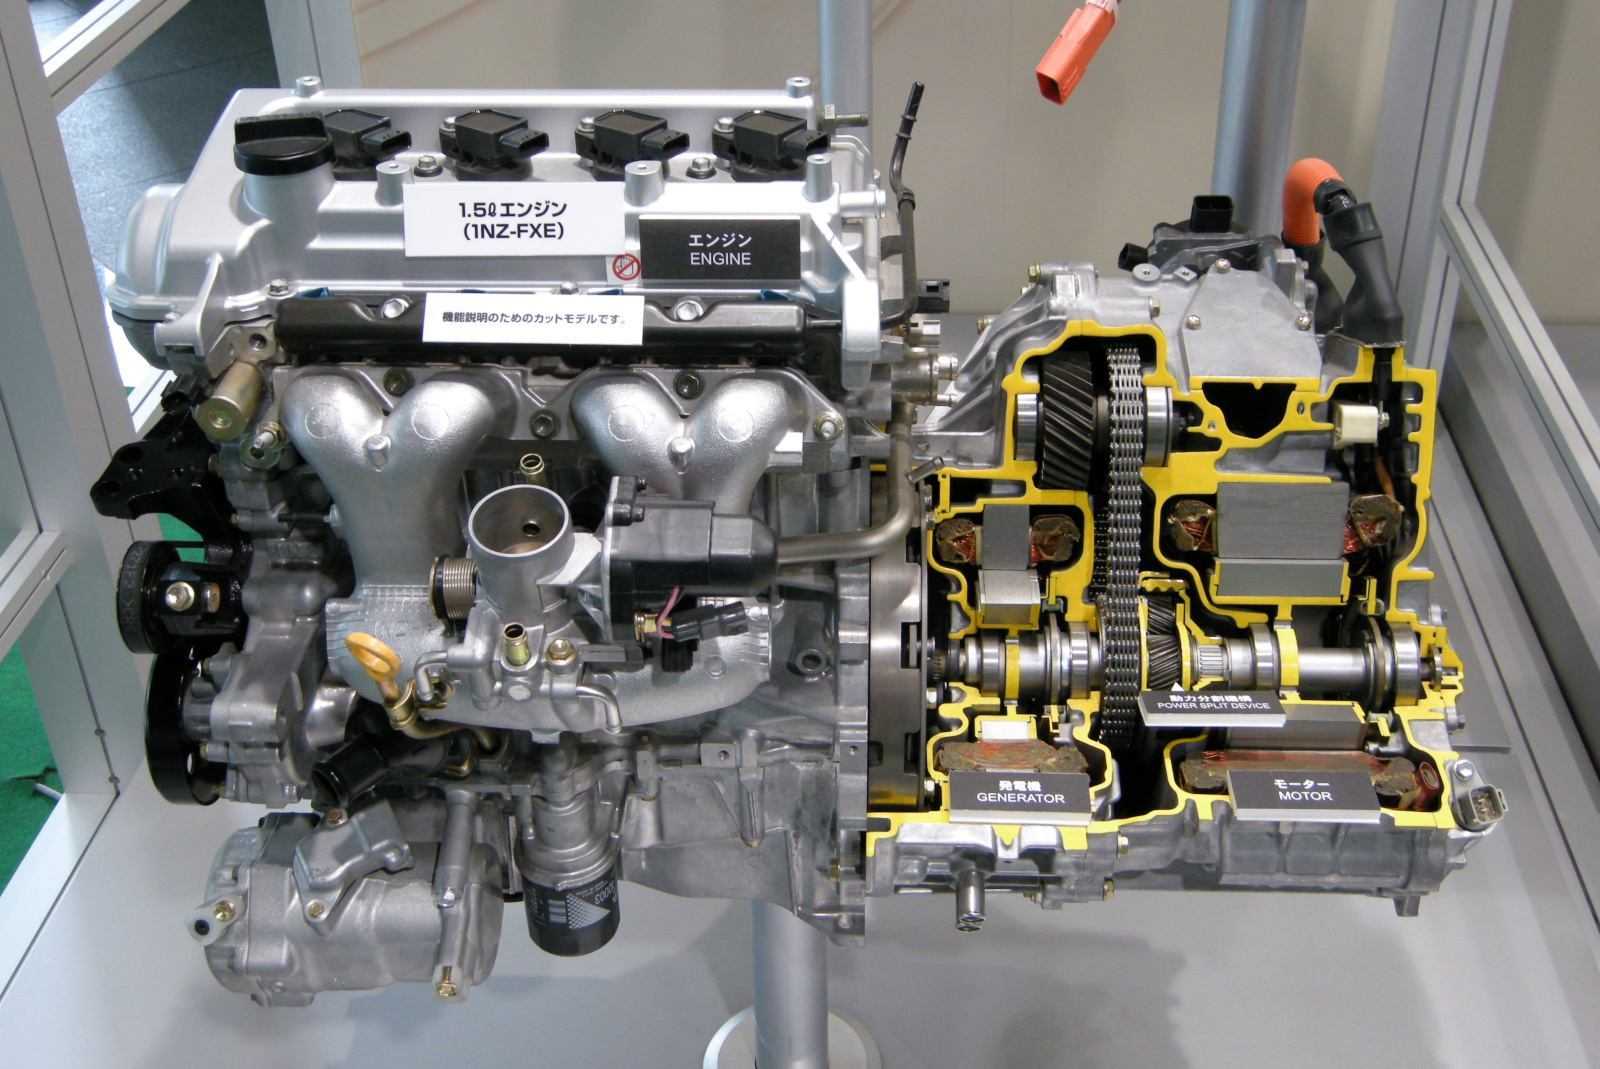 Toyota - engine hybrid system - 2008 - photo via wik- Hatsukari715